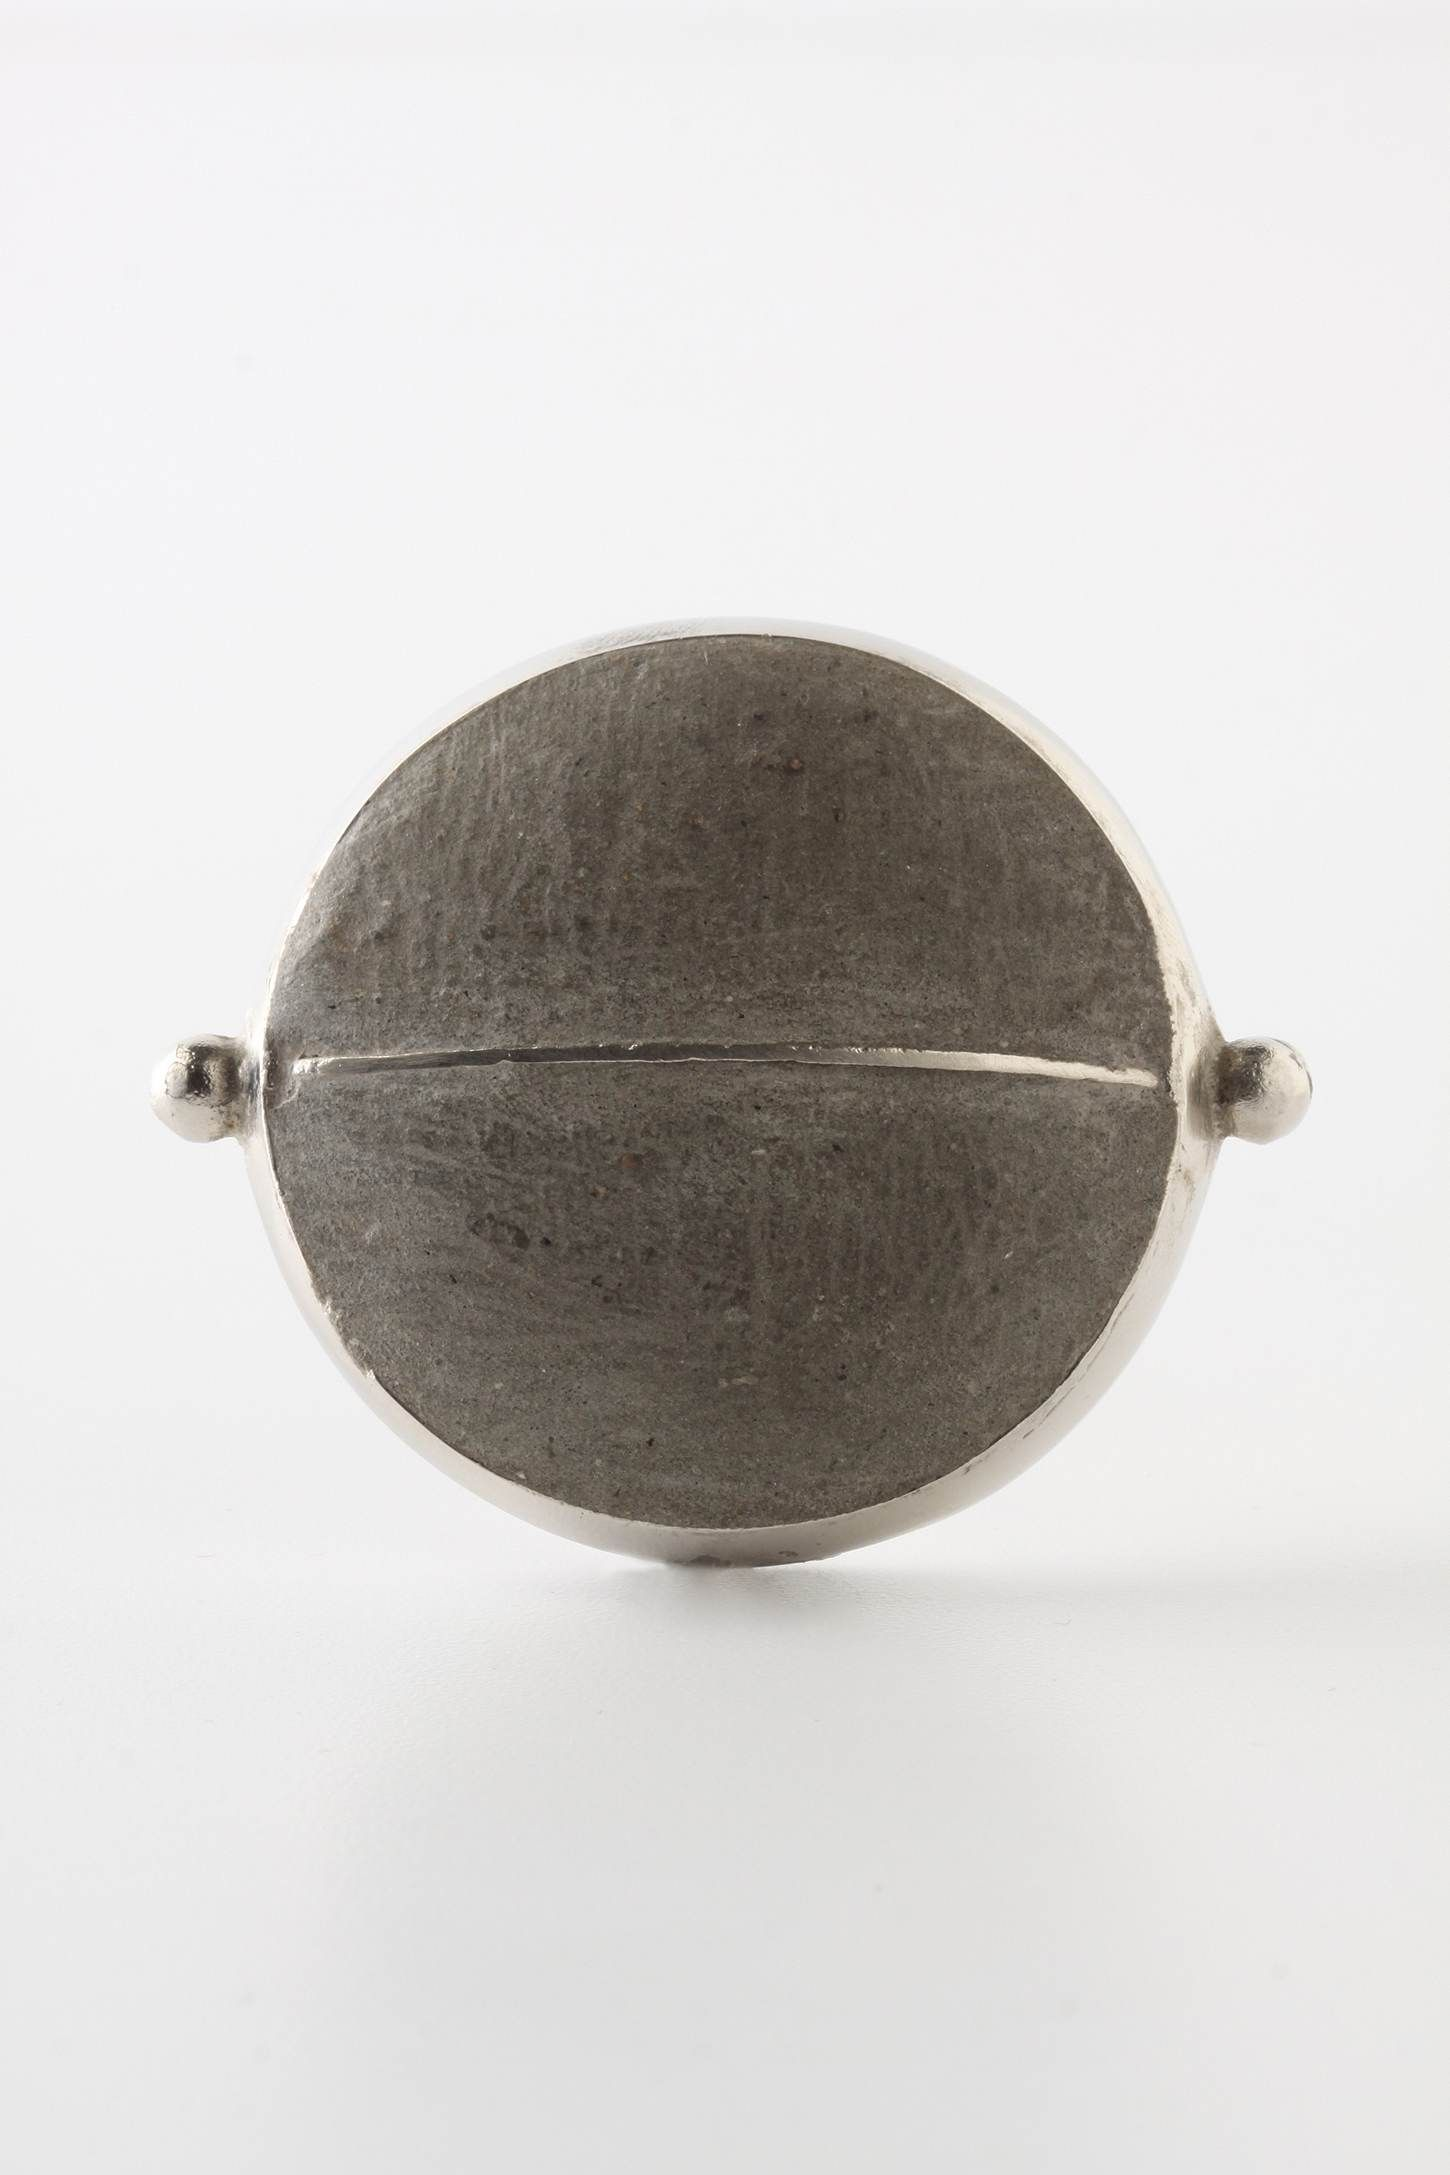 """Door knob A cast-iron frame holds smooth cement slabs, for a sleek, industrial look. Tighten with care   No additional hardware required      Iron, cement, brass      2.25"""" diameter      1"""" projection      1.75"""" bolt can be trimmed to size      Imported"""